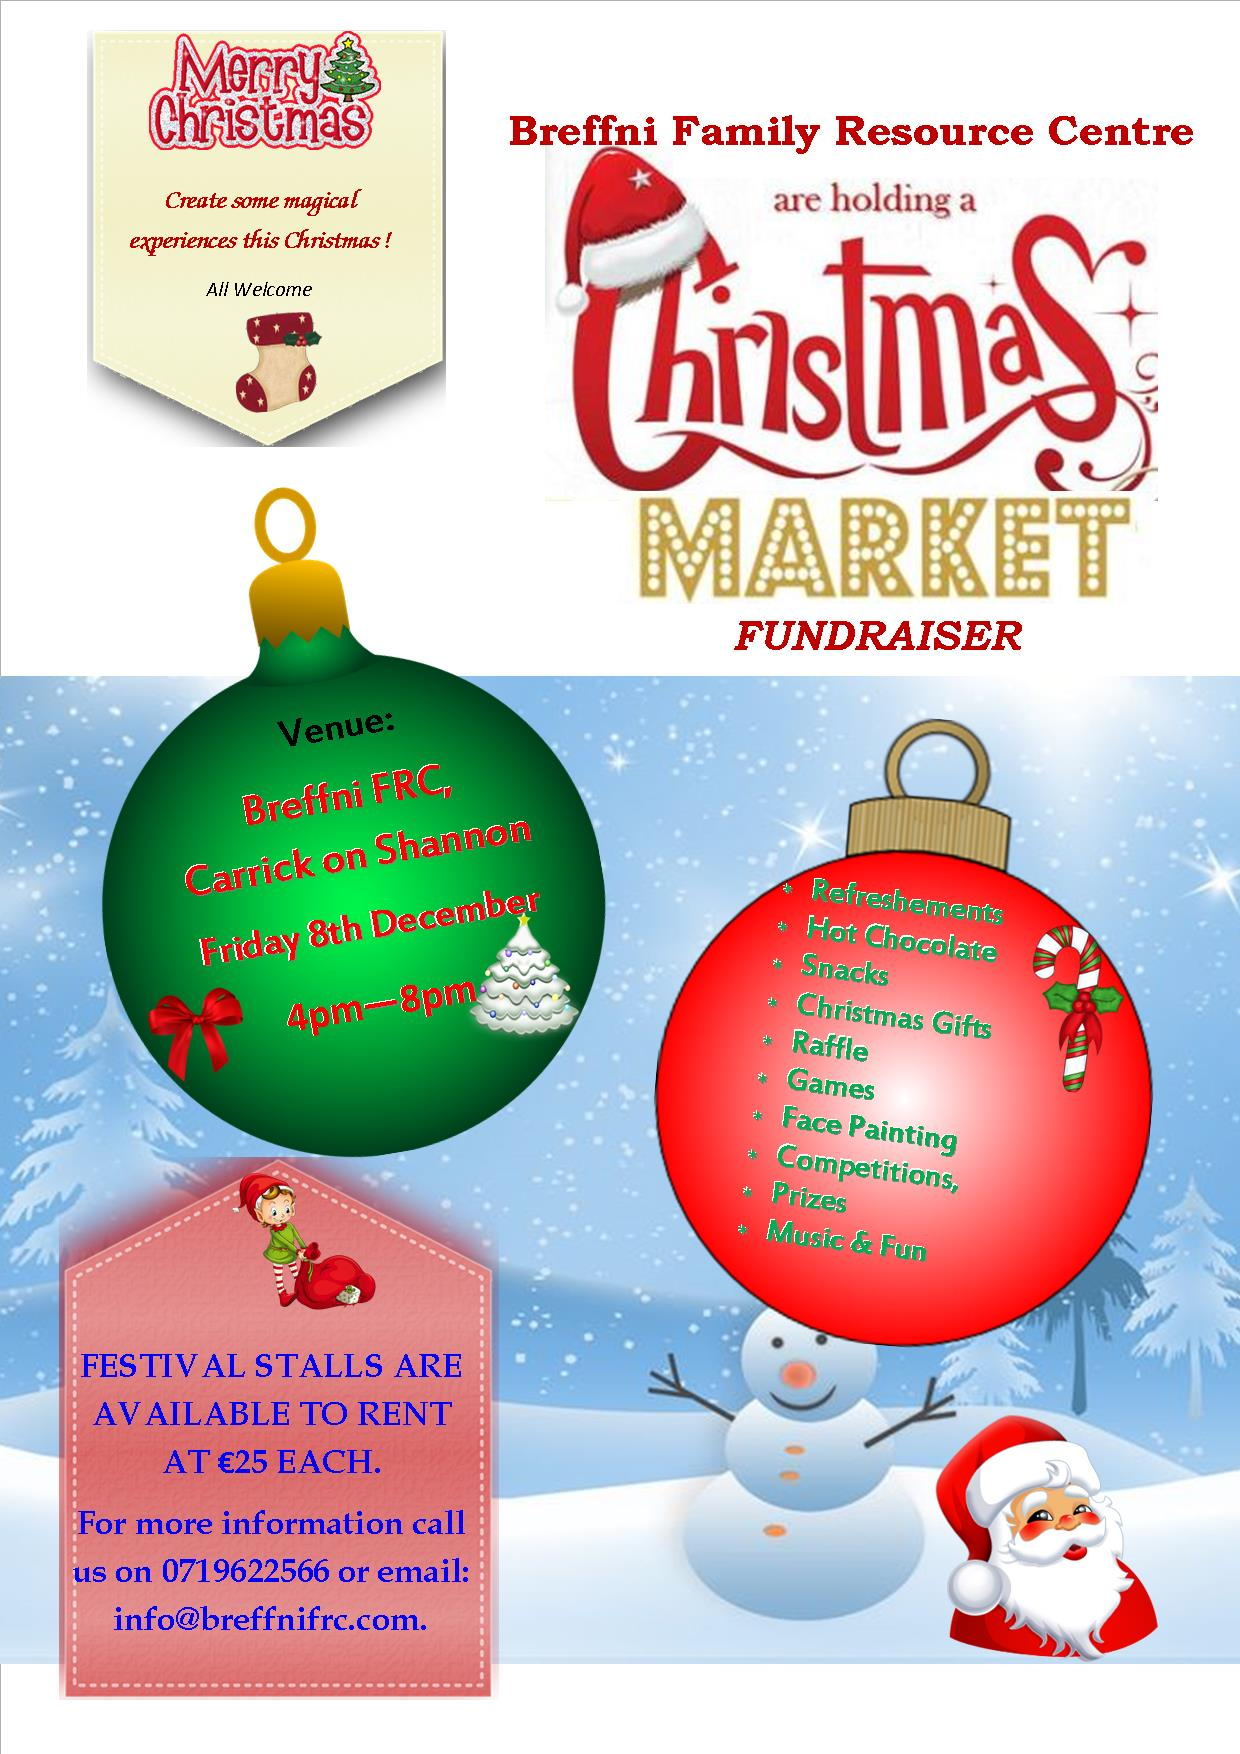 MyCarrick Event - Breffni Family Resource Centre - Christmas Market Festival